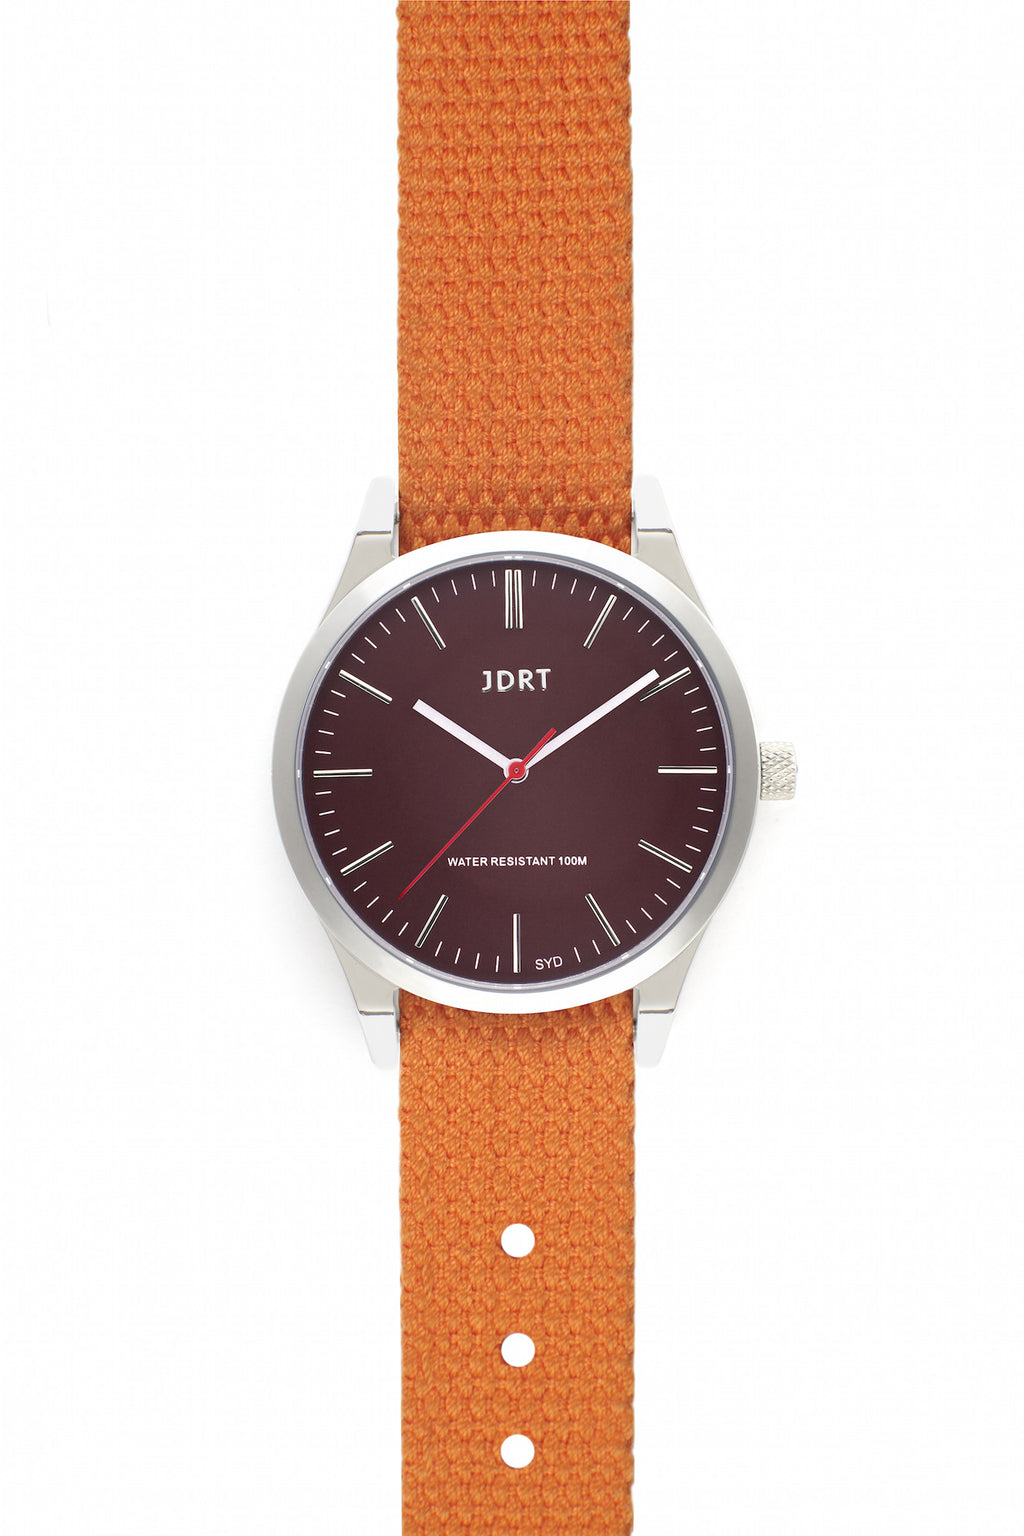 Oxblood Face with Hazard Canvas Watch Band